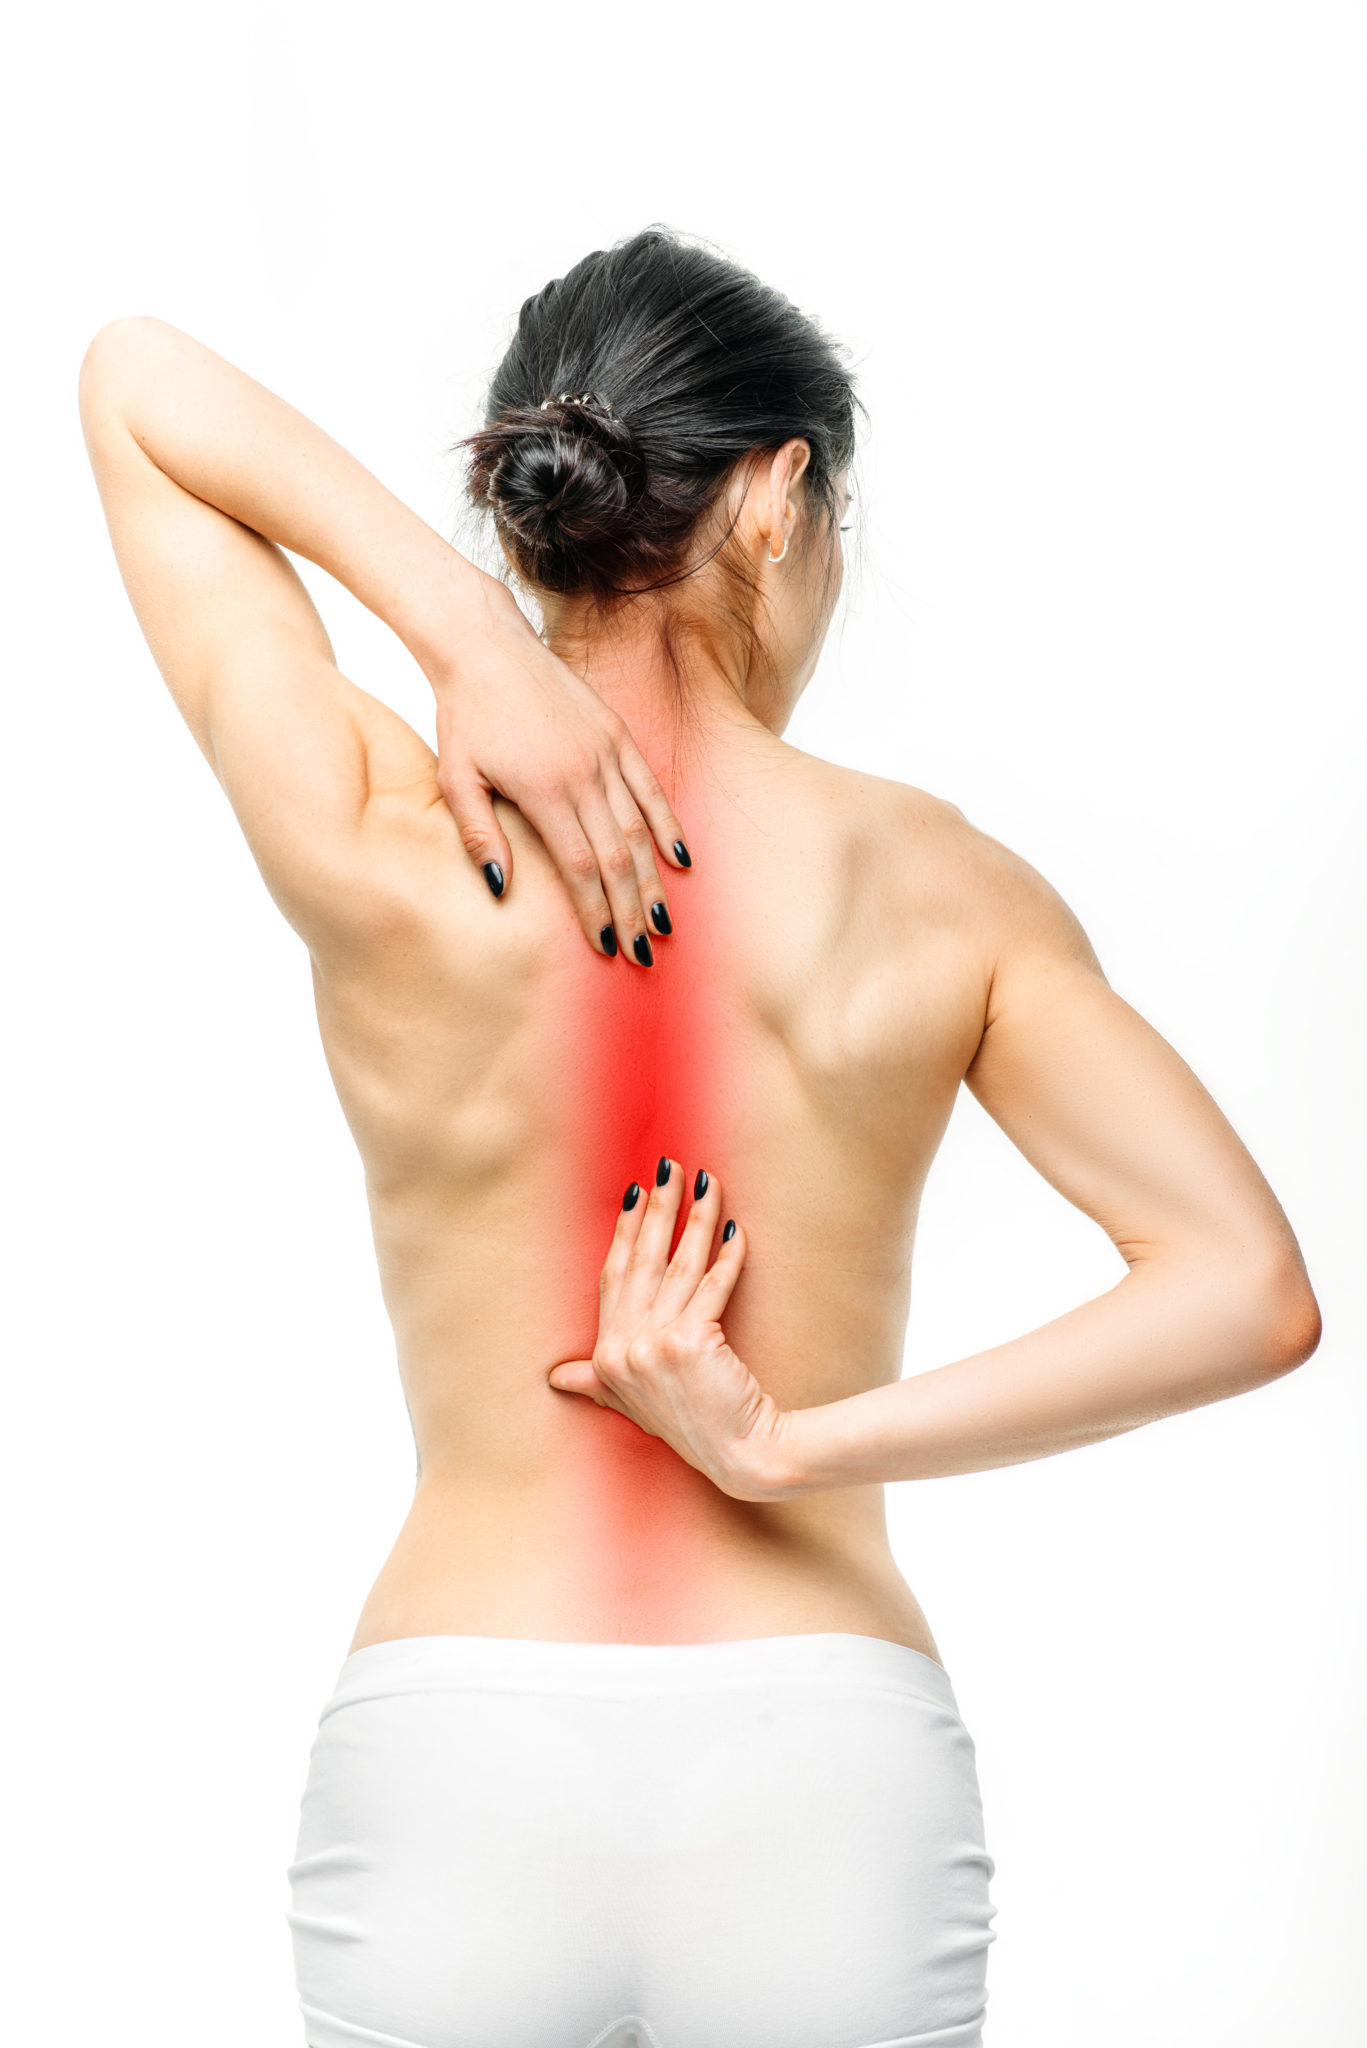 female person with backache on white background PH3FDYS scaled